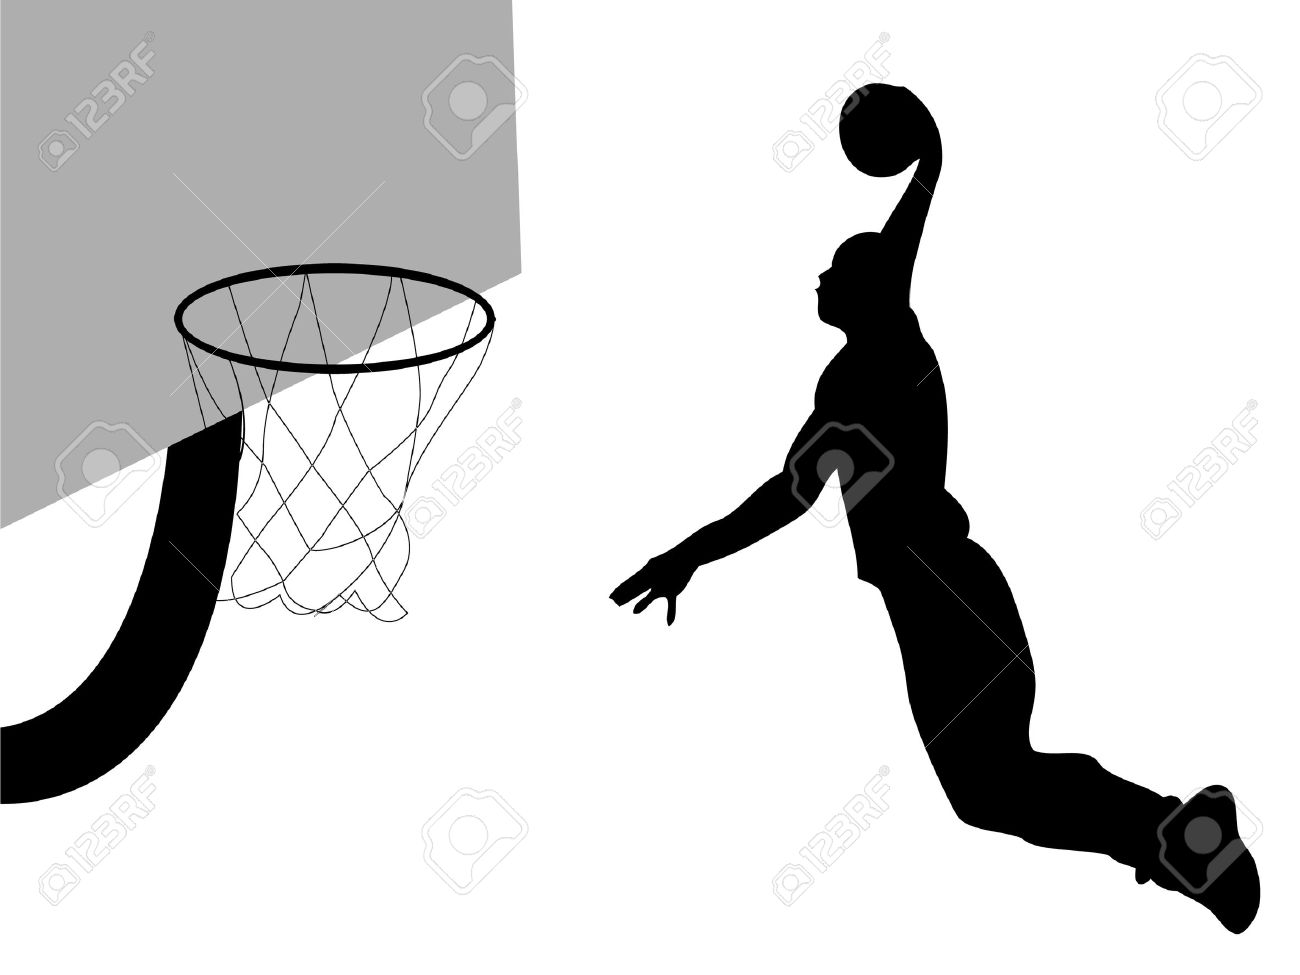 Basketball player dunking ball.